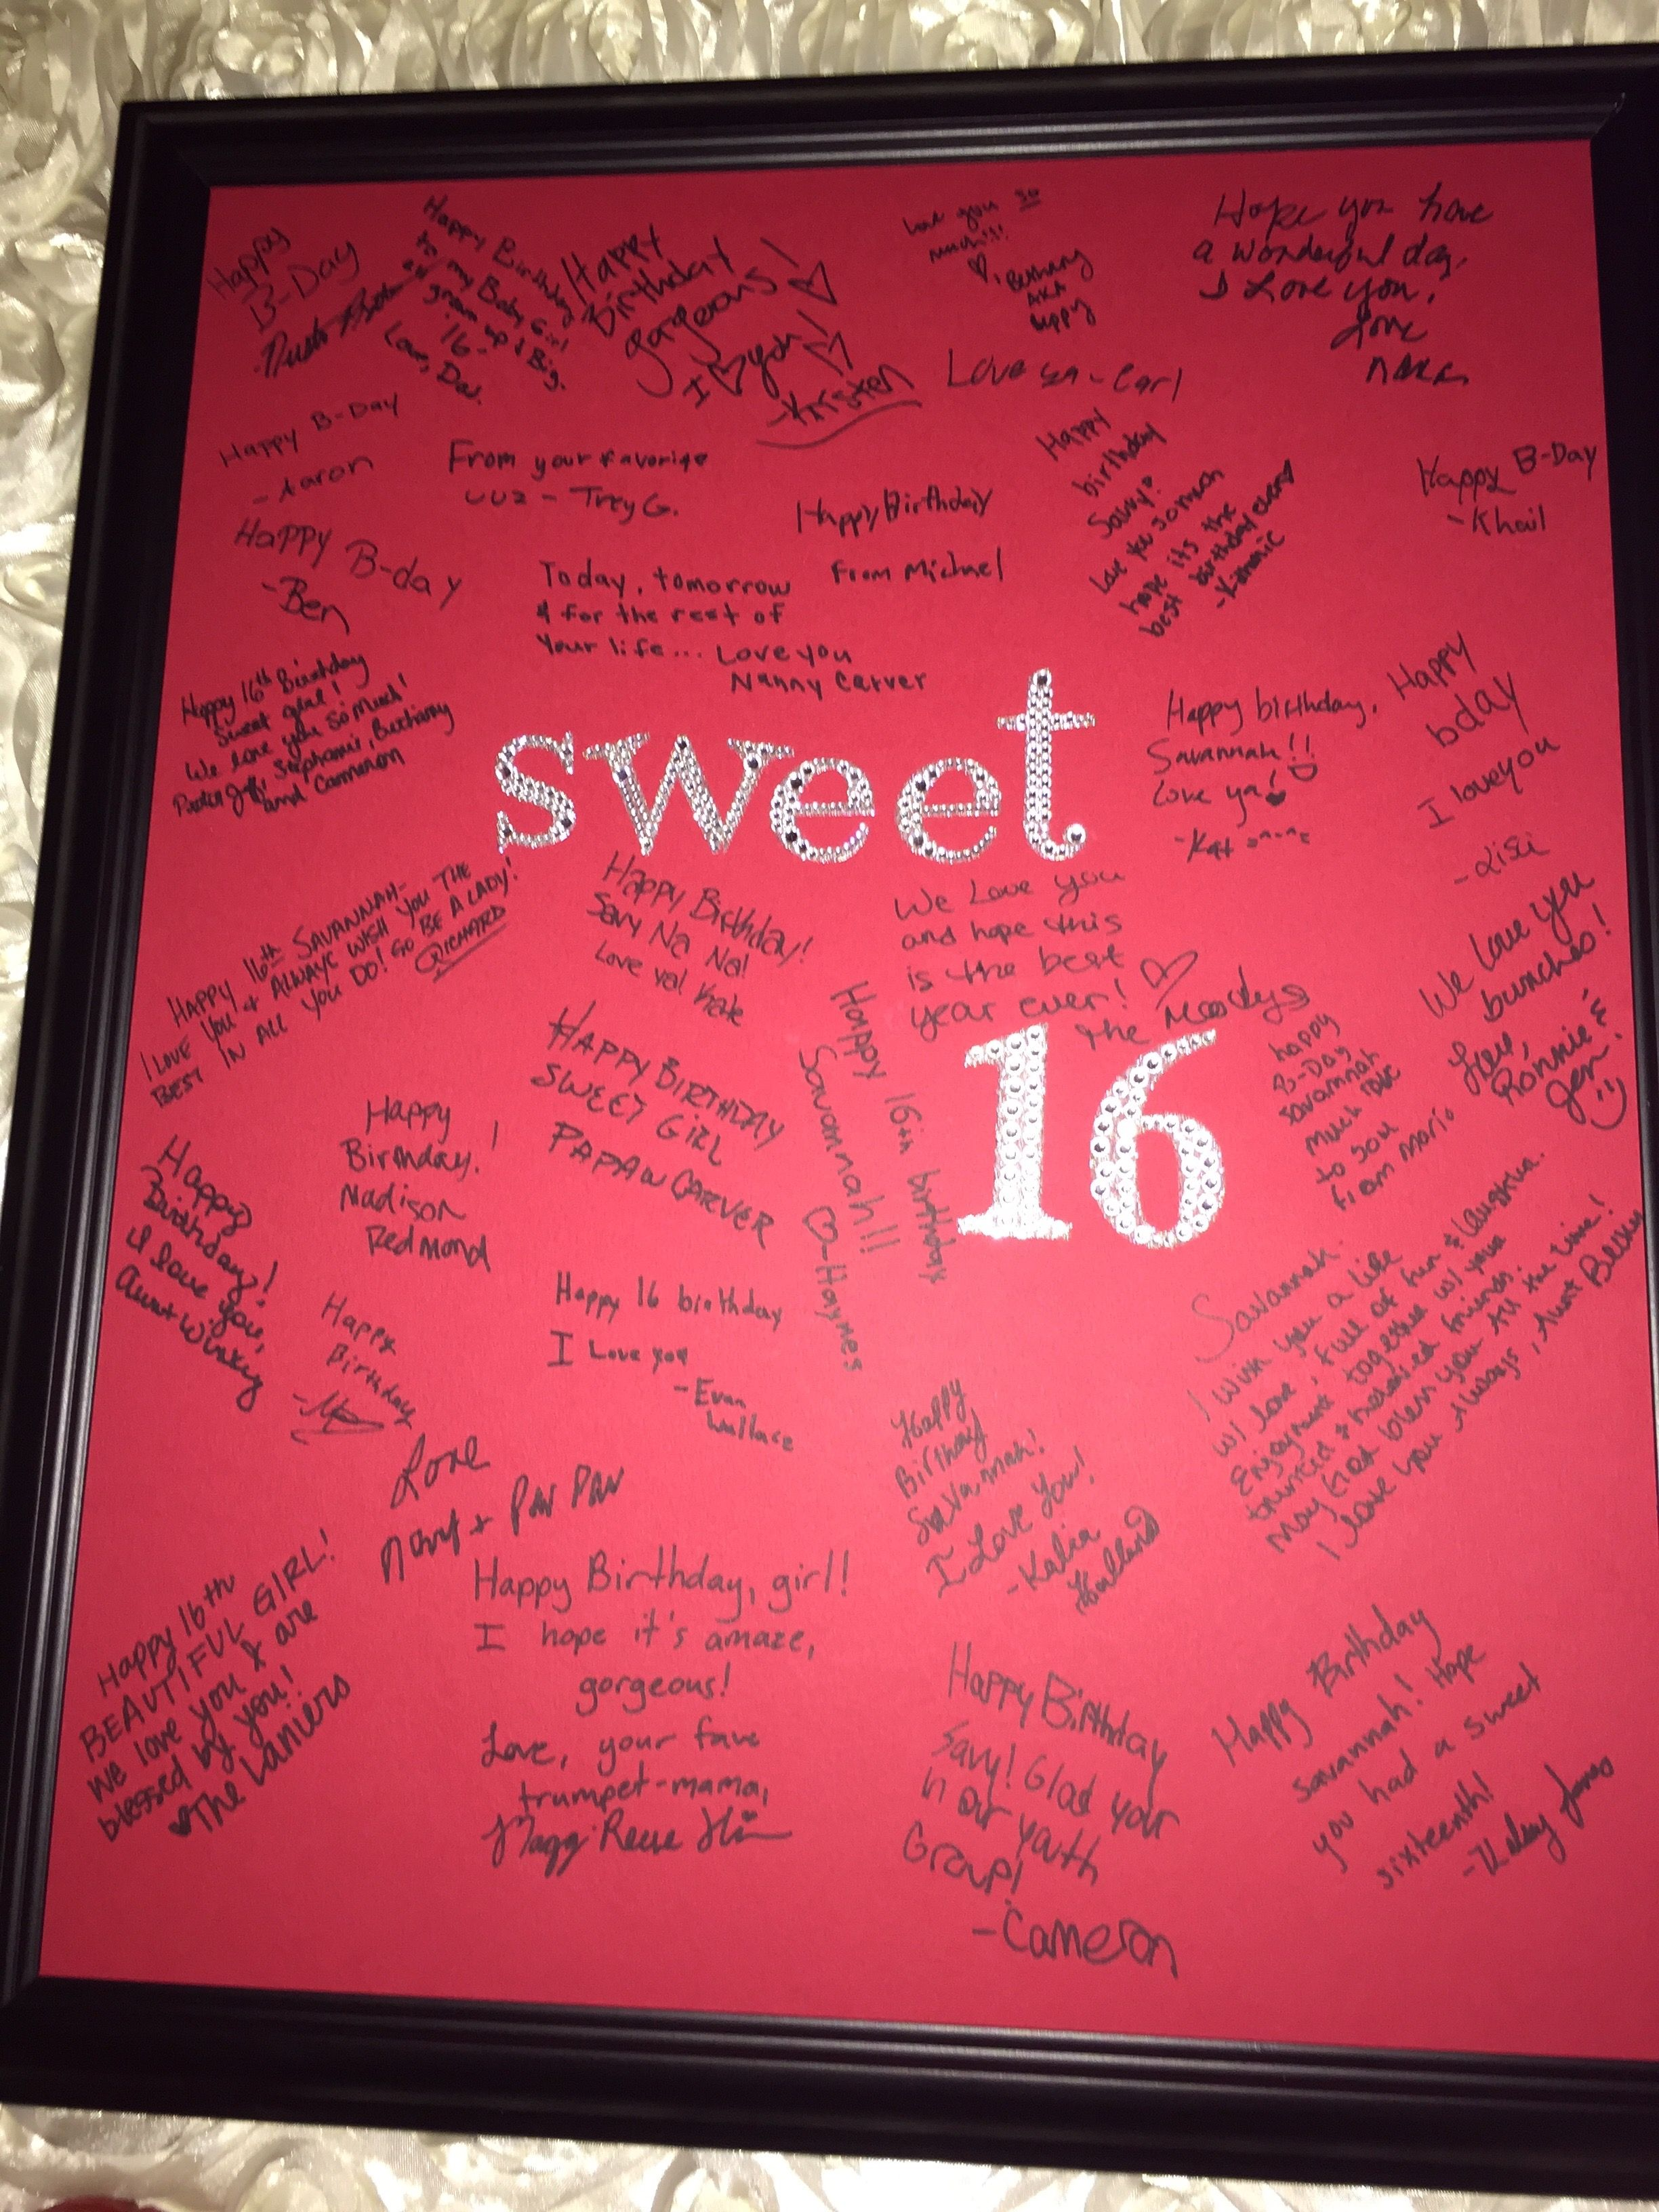 Sweet 16 Keepsake Autograph Photo Frame made for my Nieces Birthday ...